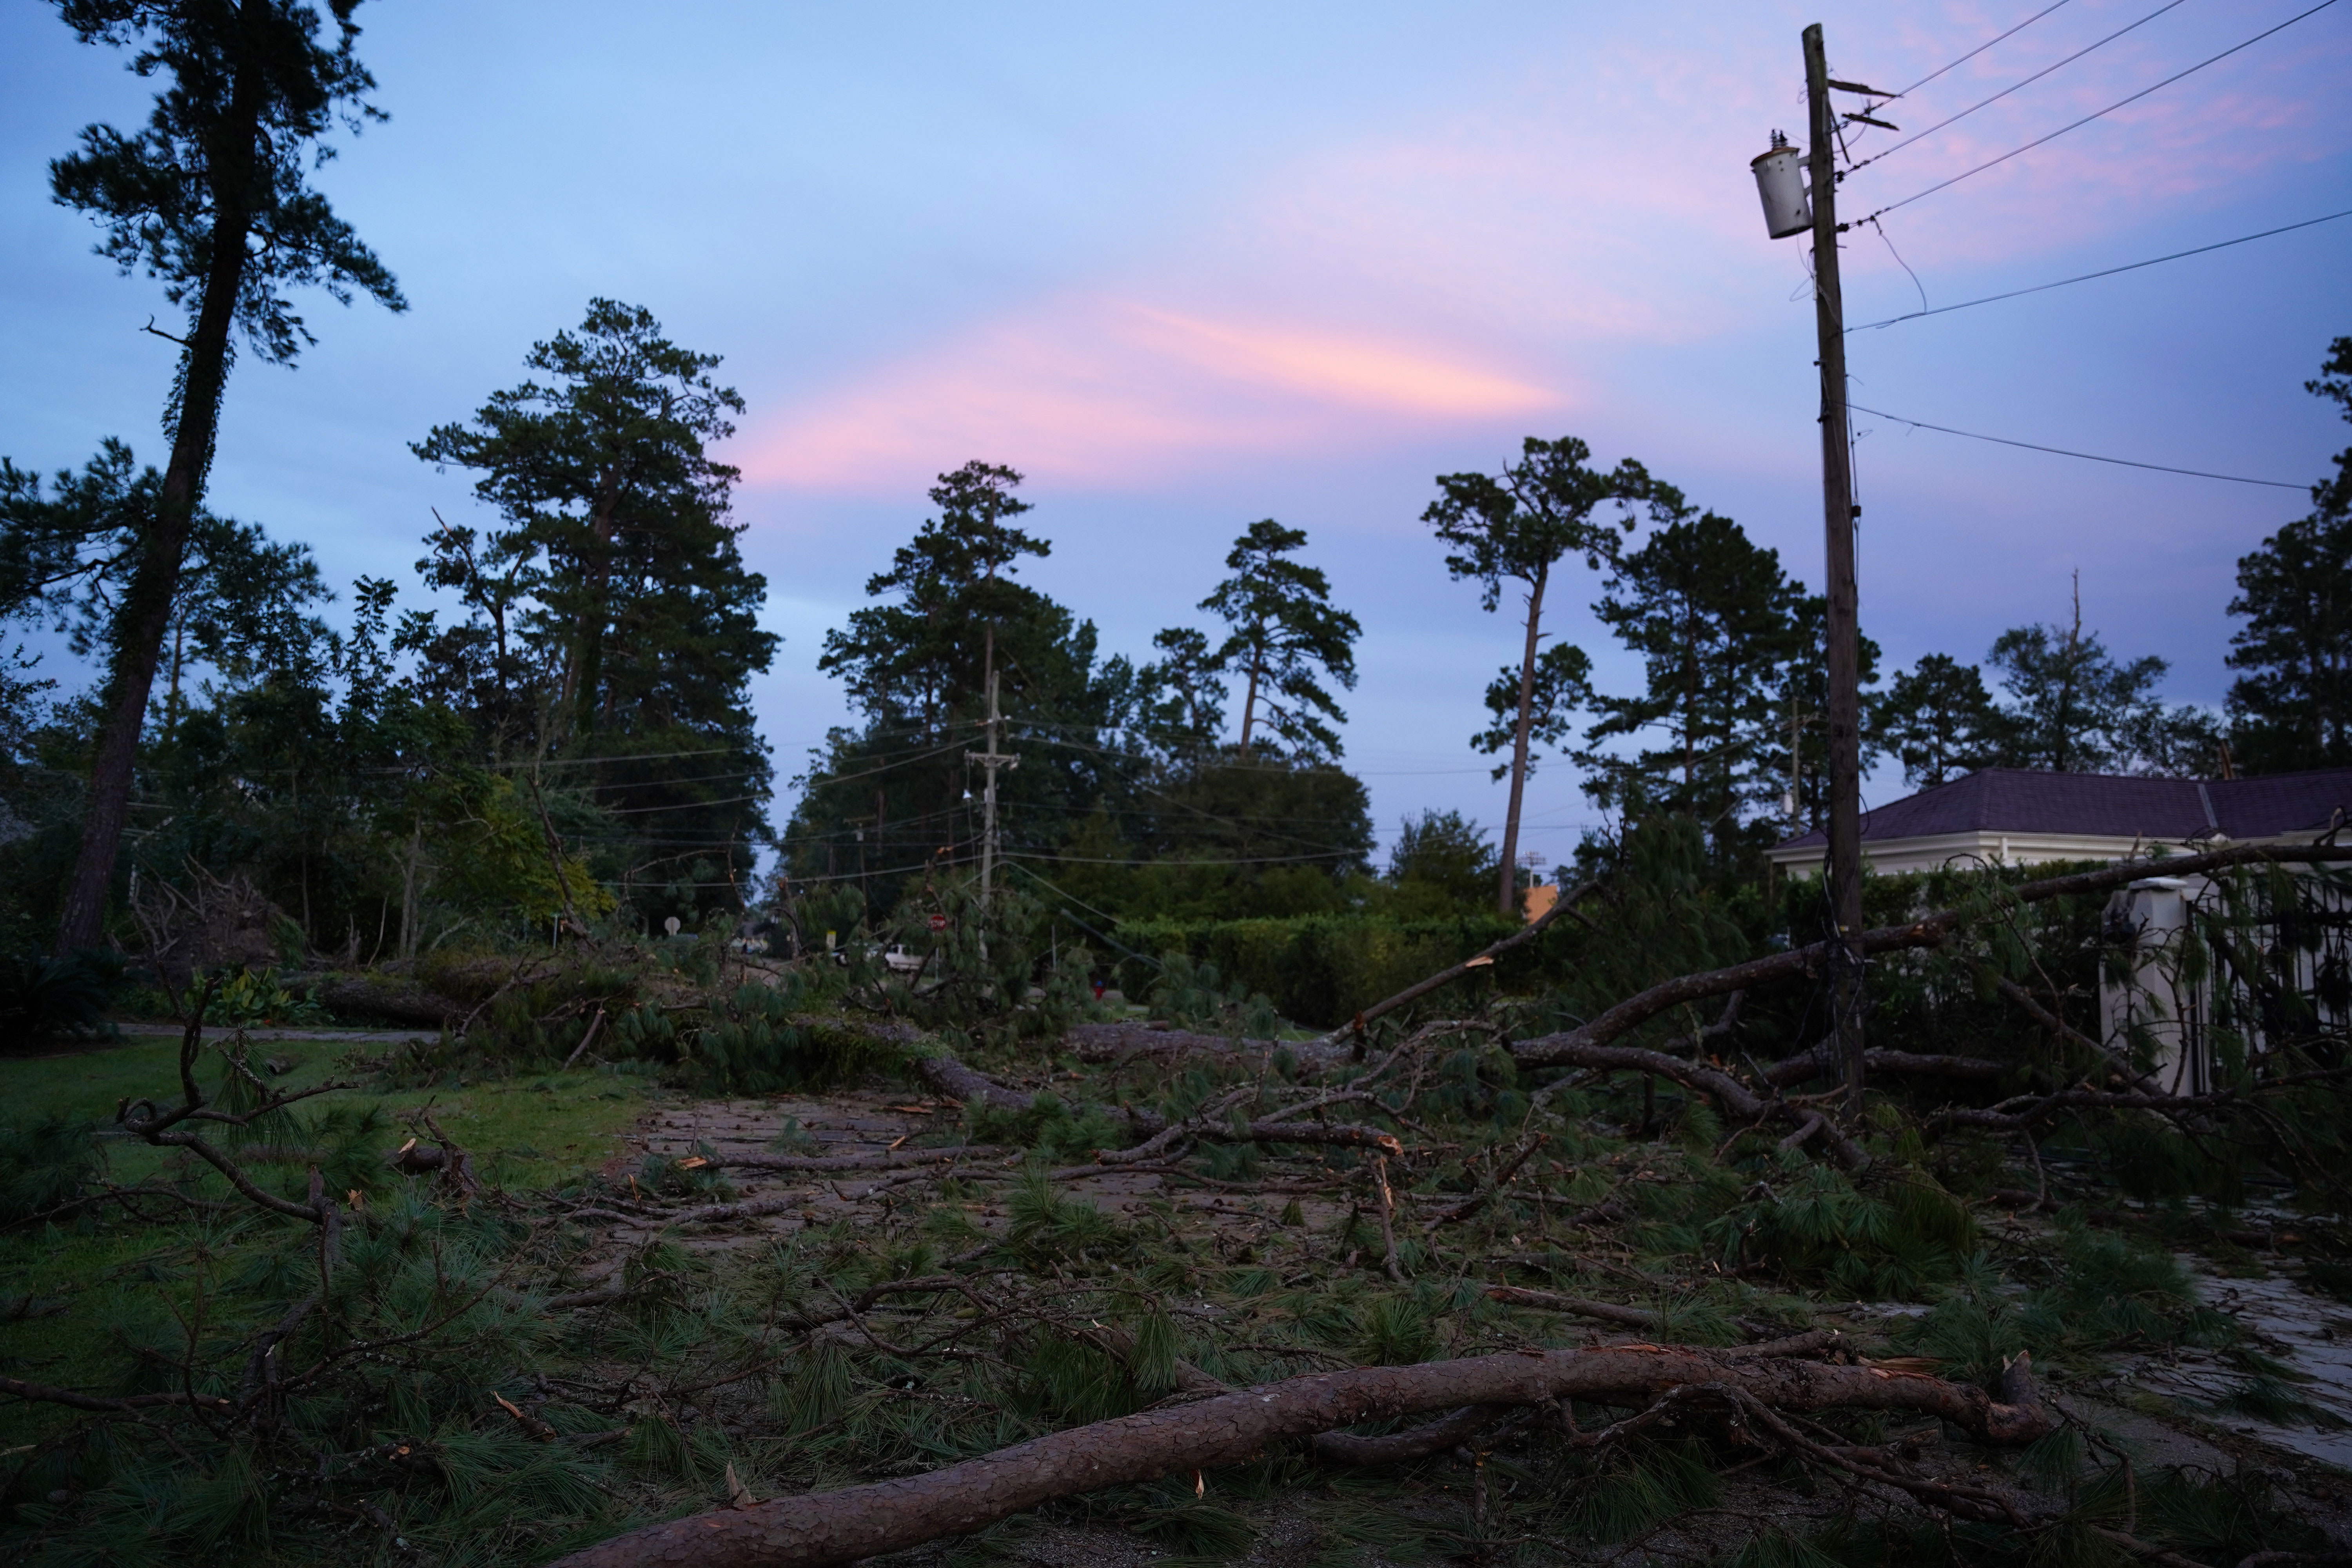 A storm-damaged neighborhood in Covington, Louisiana, is pictured during sunset on August 31.